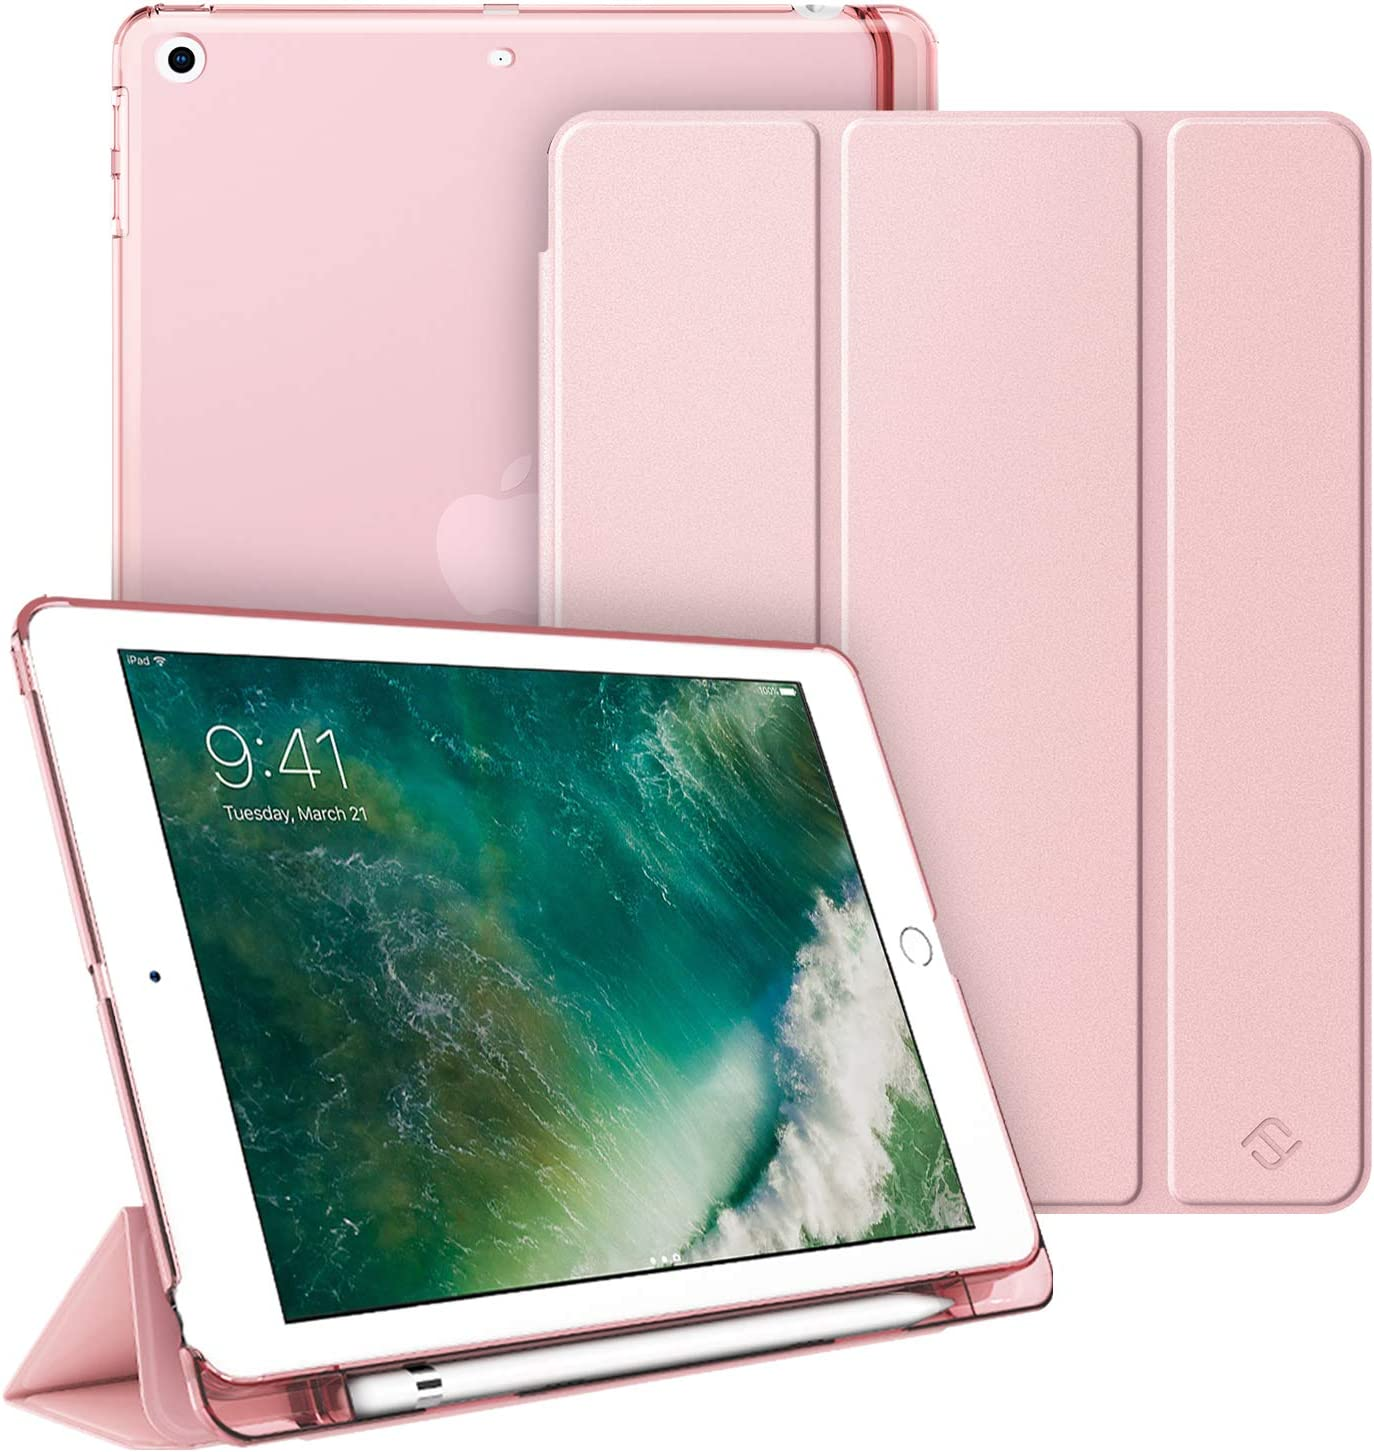 Fintie Case with Built-in Pencil Holder for iPad 9.7 Inch 2018 - Lightweight SlimShell Cover with Translucent Frosted Back, Supports Auto Wake/Sleep for iPad 6th Generation, Rose Gold